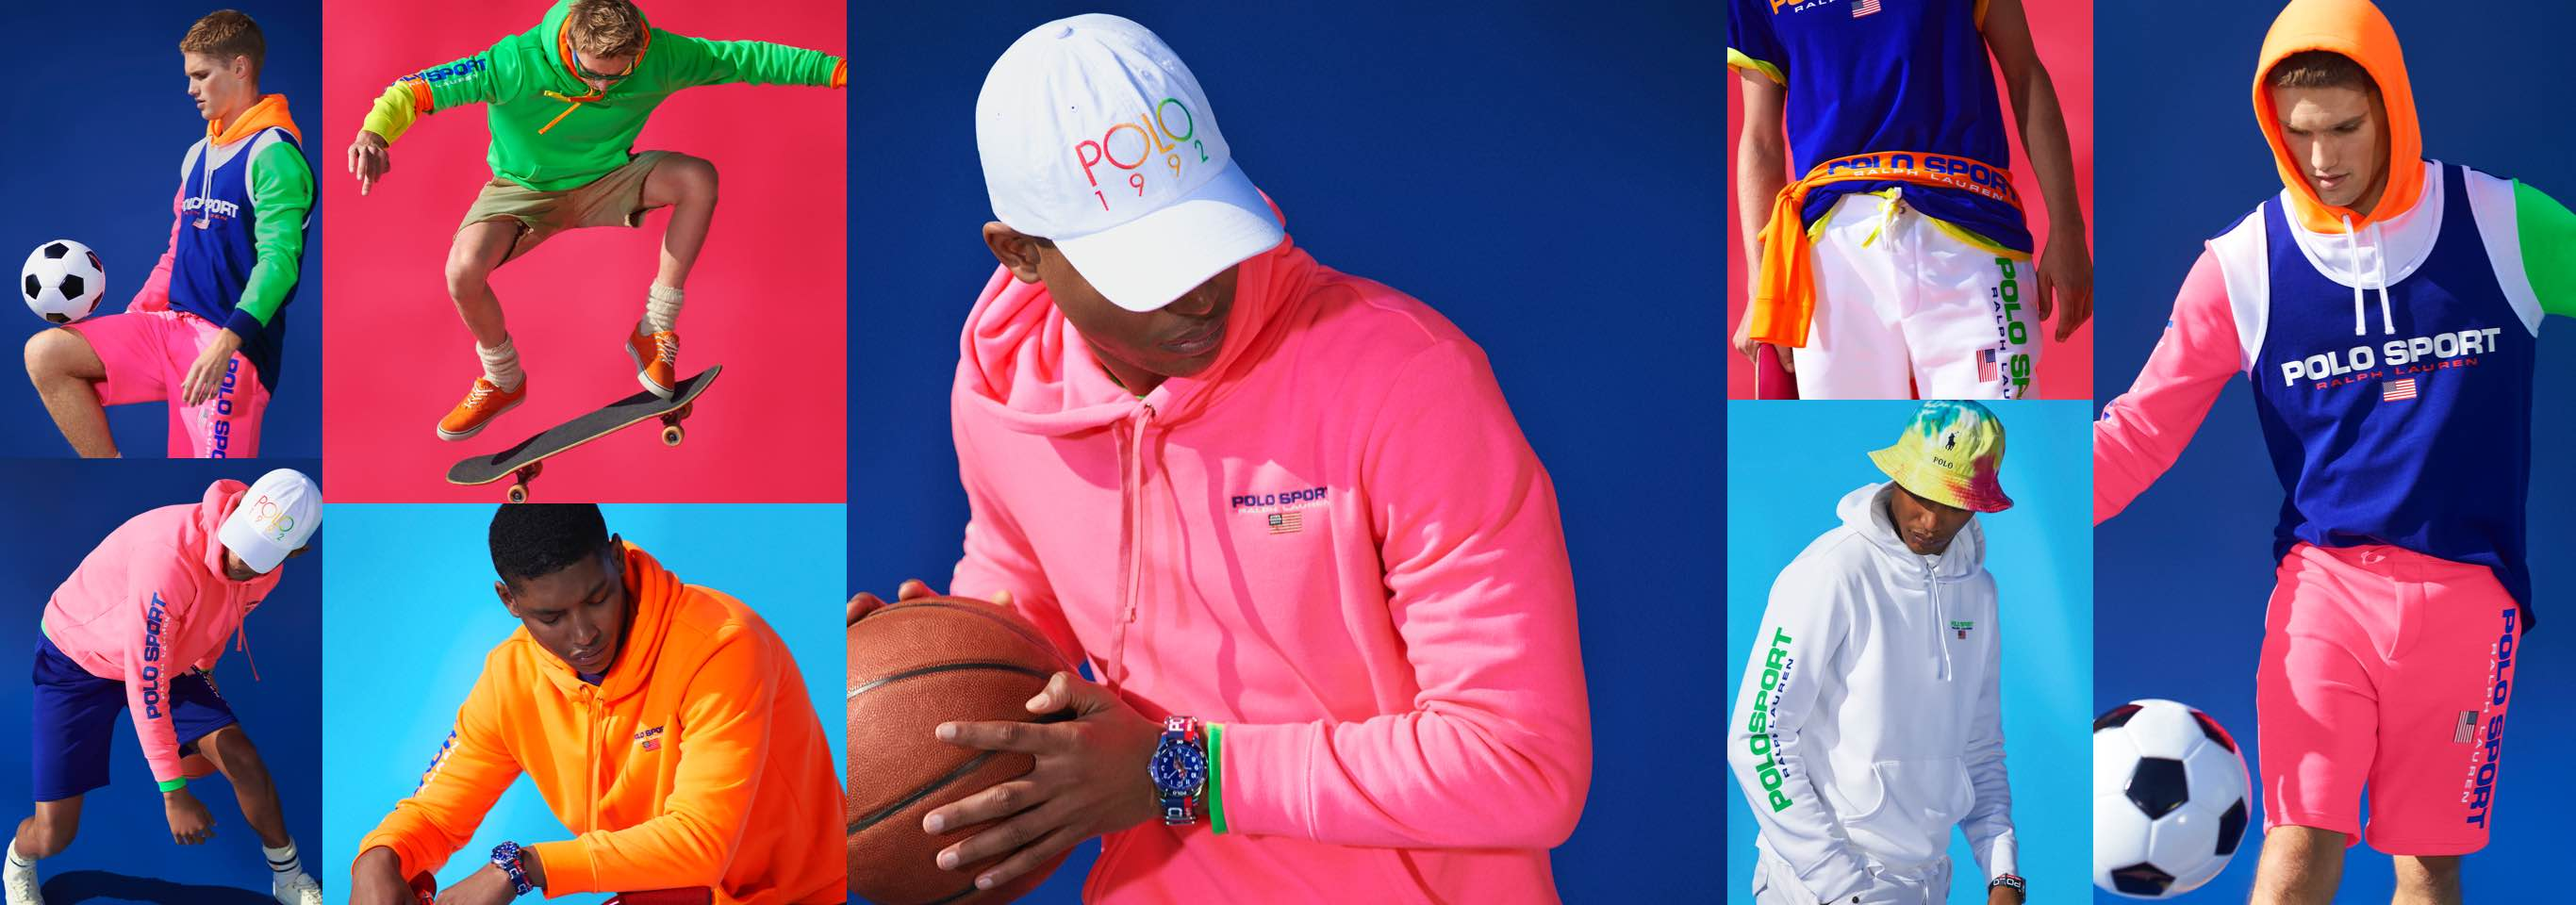 Collage of men in neon Polo Sport apparel